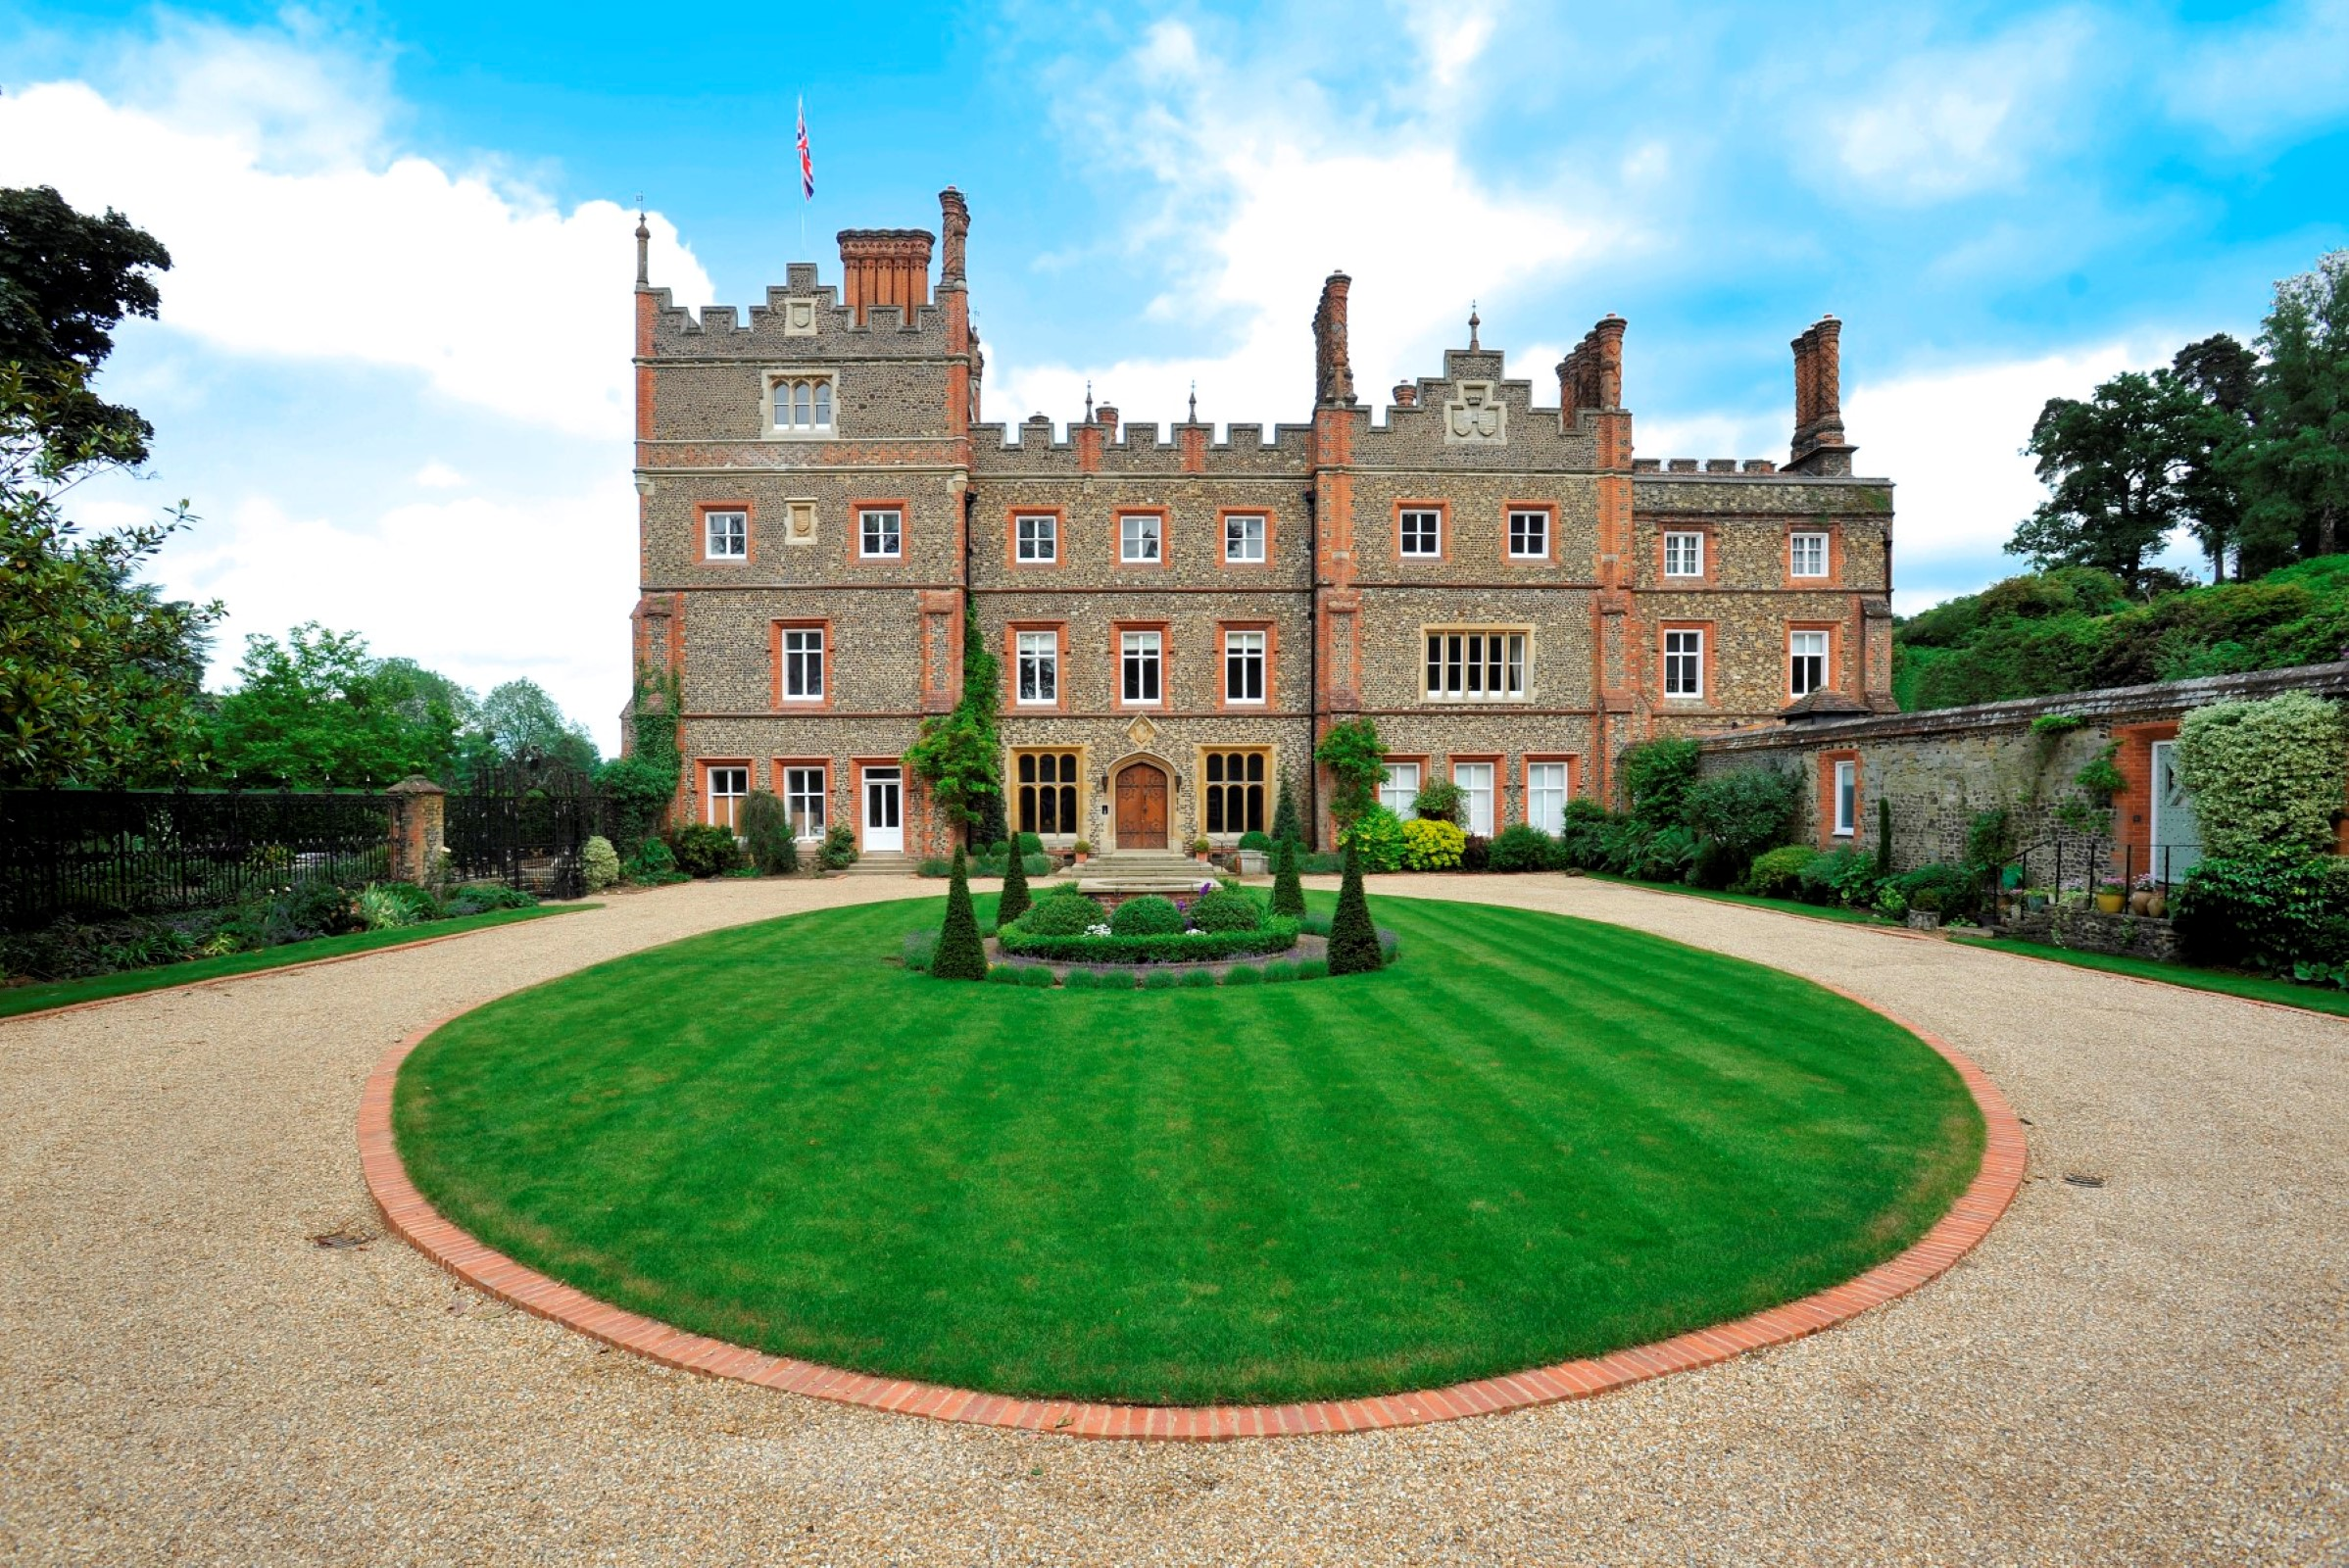 Appartement pour l Vente à Apt 6, Albury Park Mansion Albury Park Mansion New Road Guildford, Angleterre, GU59BB Royaume-Uni